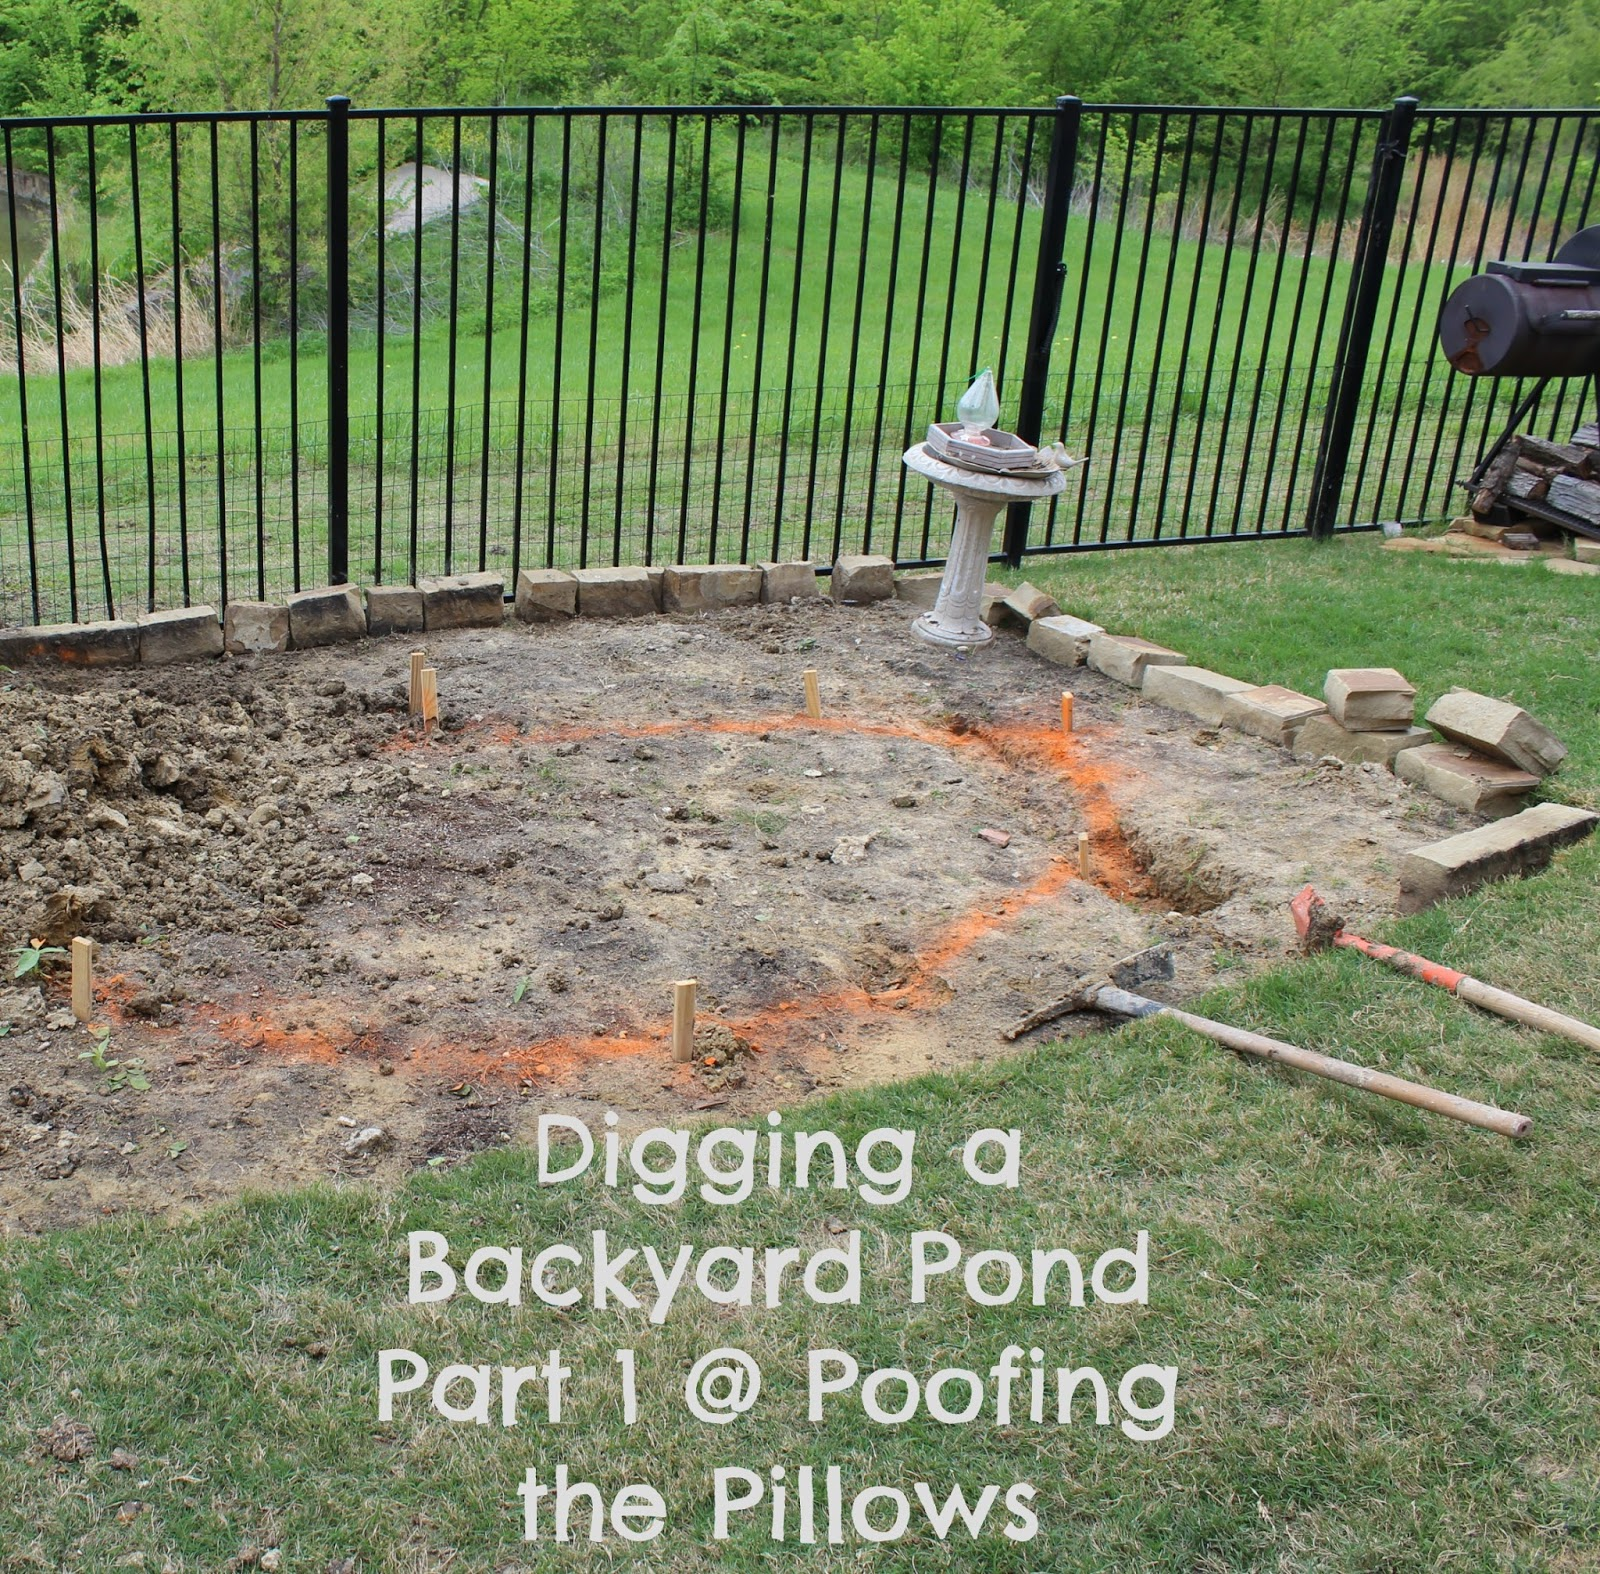 Building a Backyard Pond Part 2